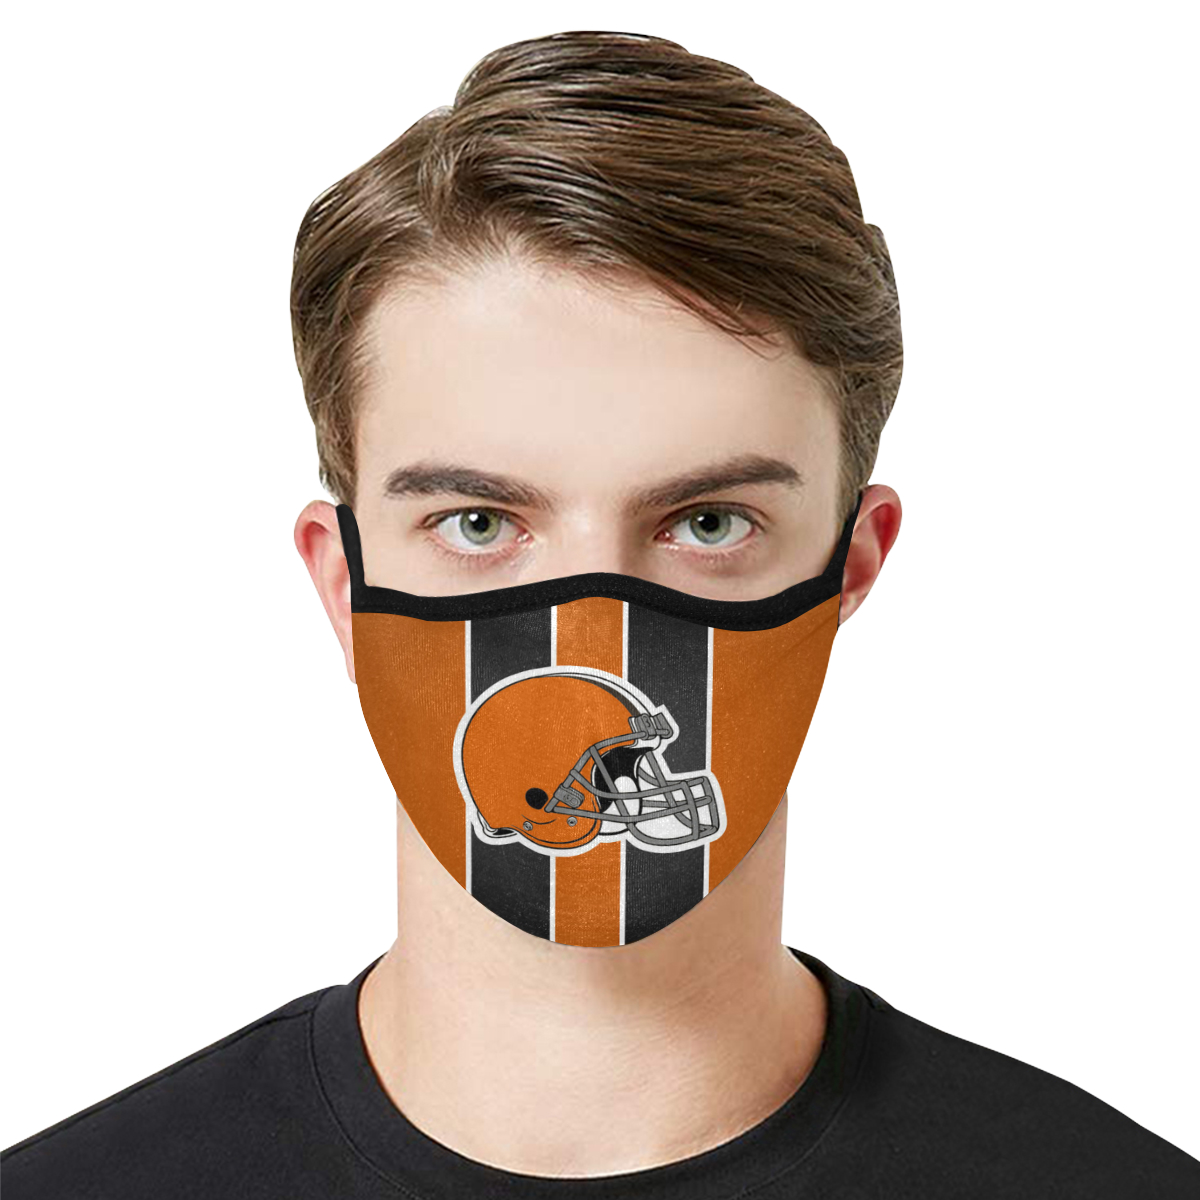 National football league cleveland browns face mask 4